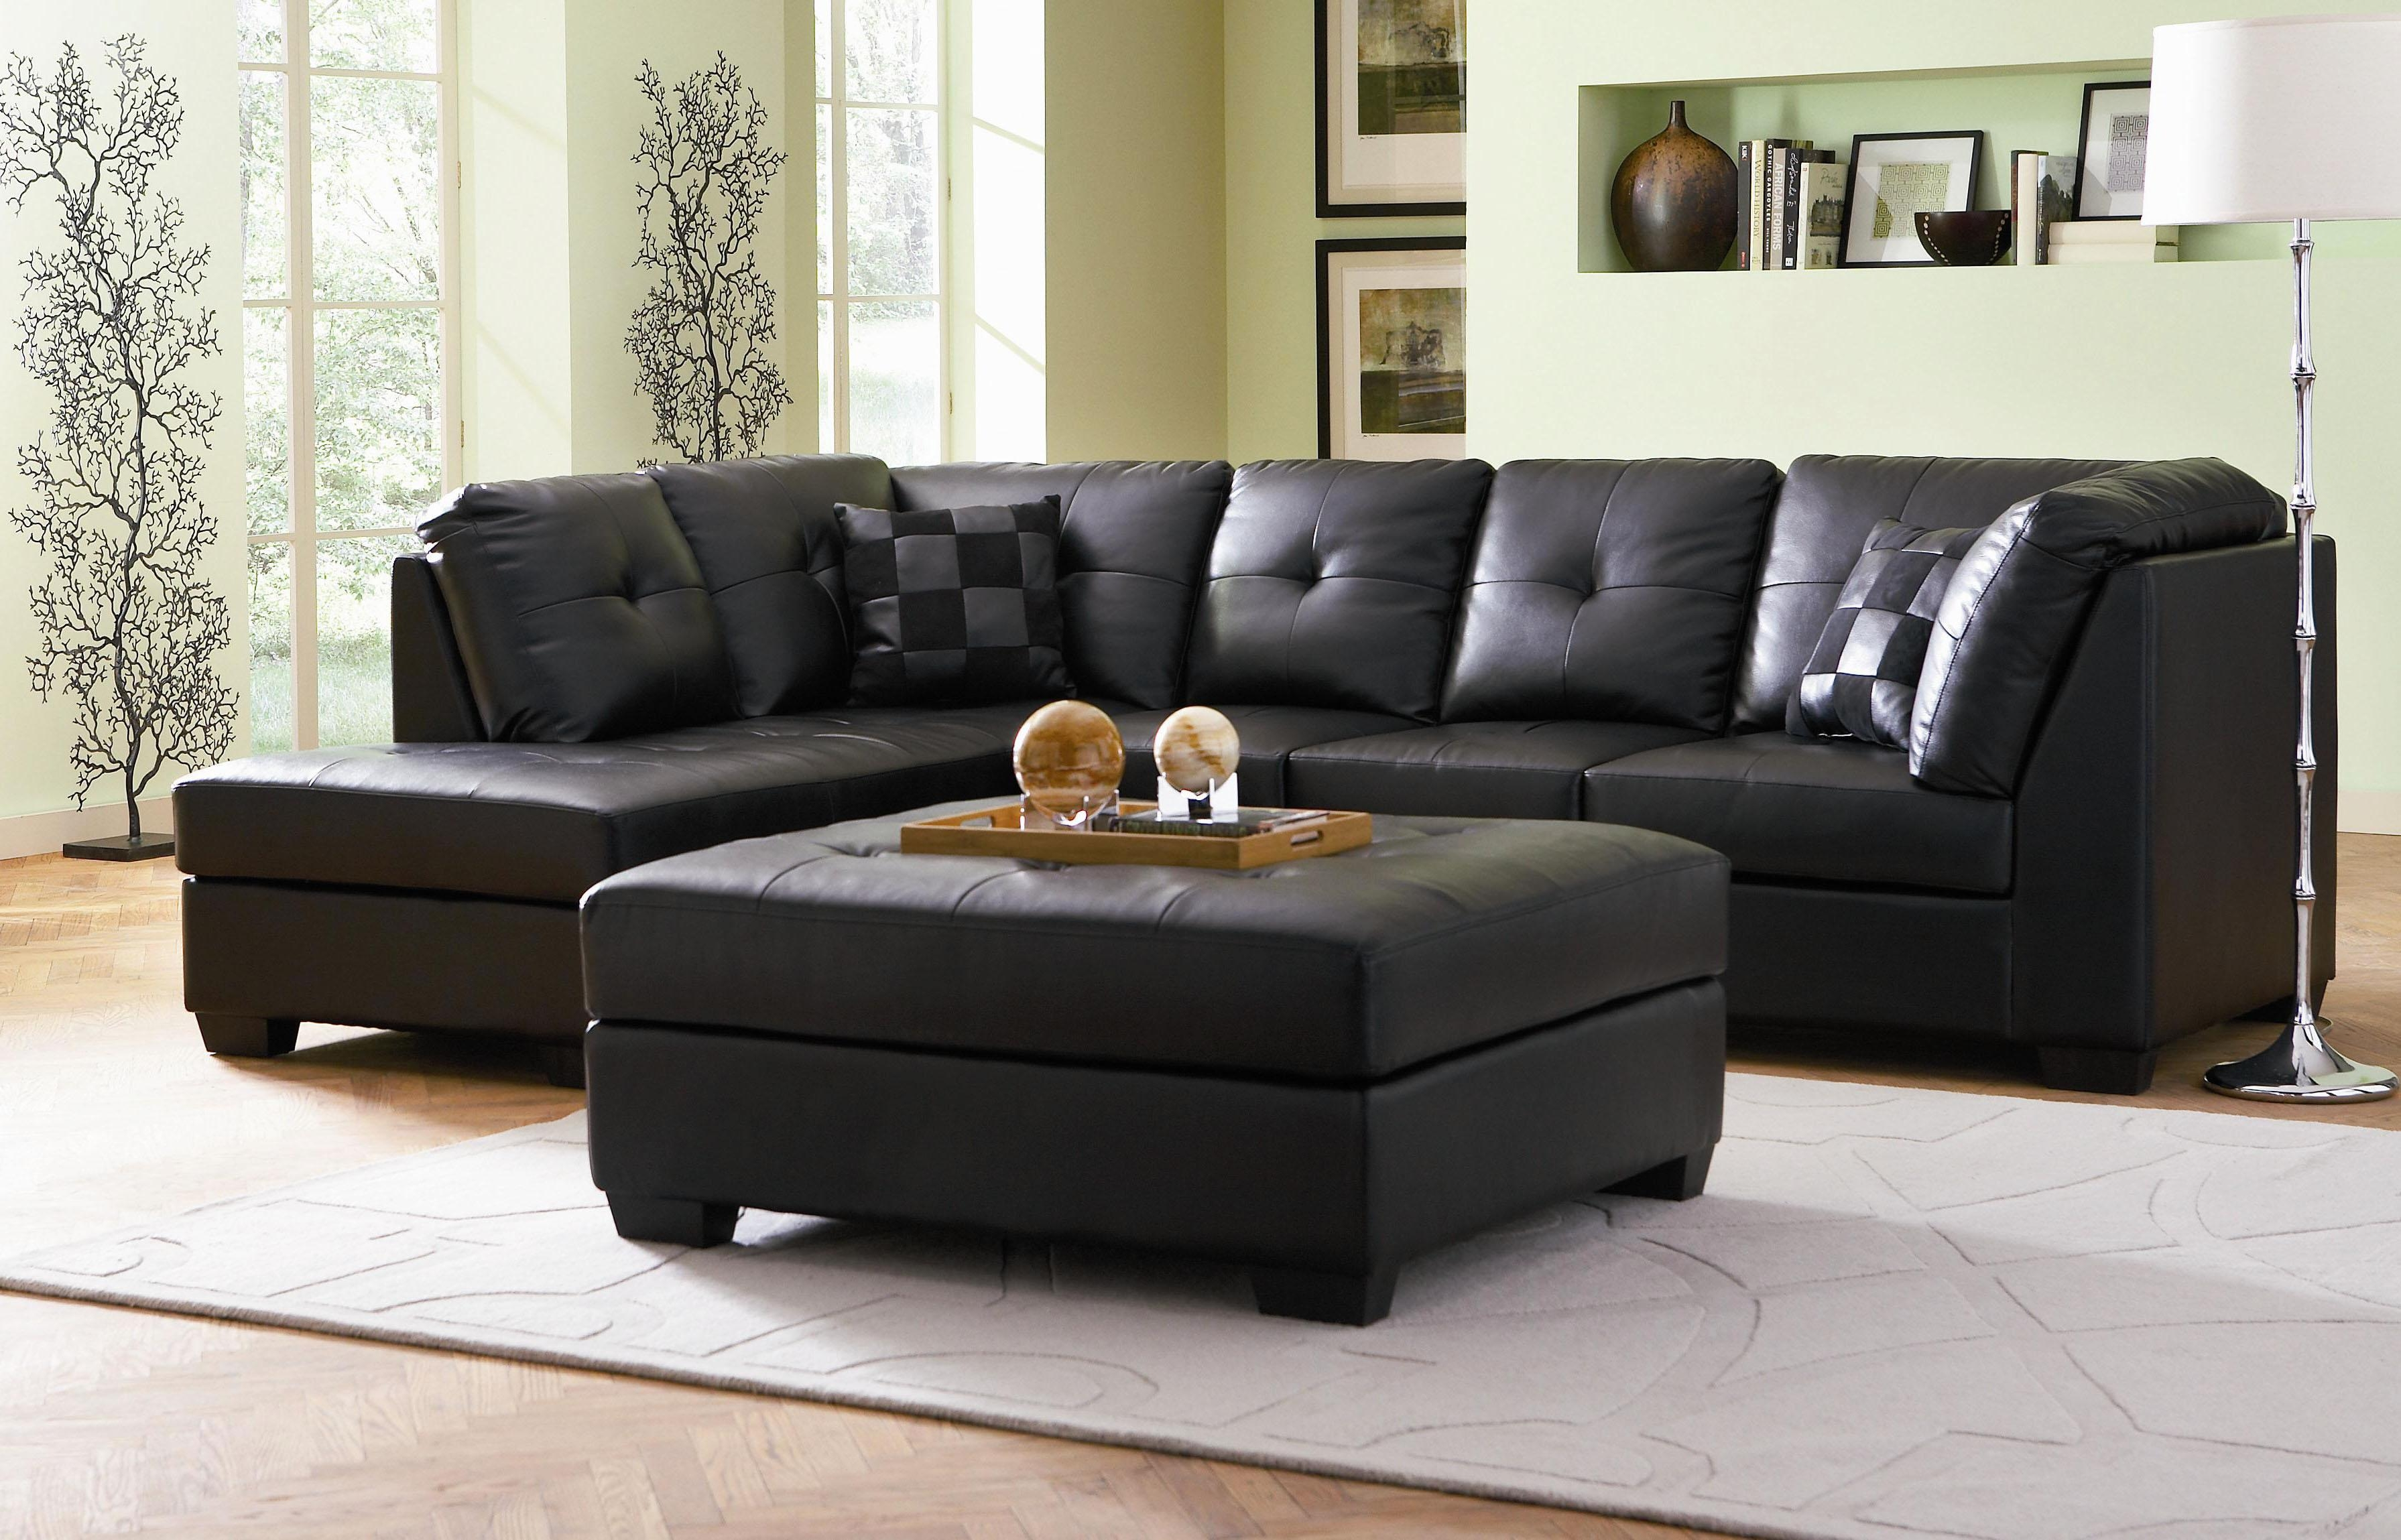 Modern Sectional Sofas With Chaise – Destroybmx With Regard To Small Black Sofas (Image 7 of 20)